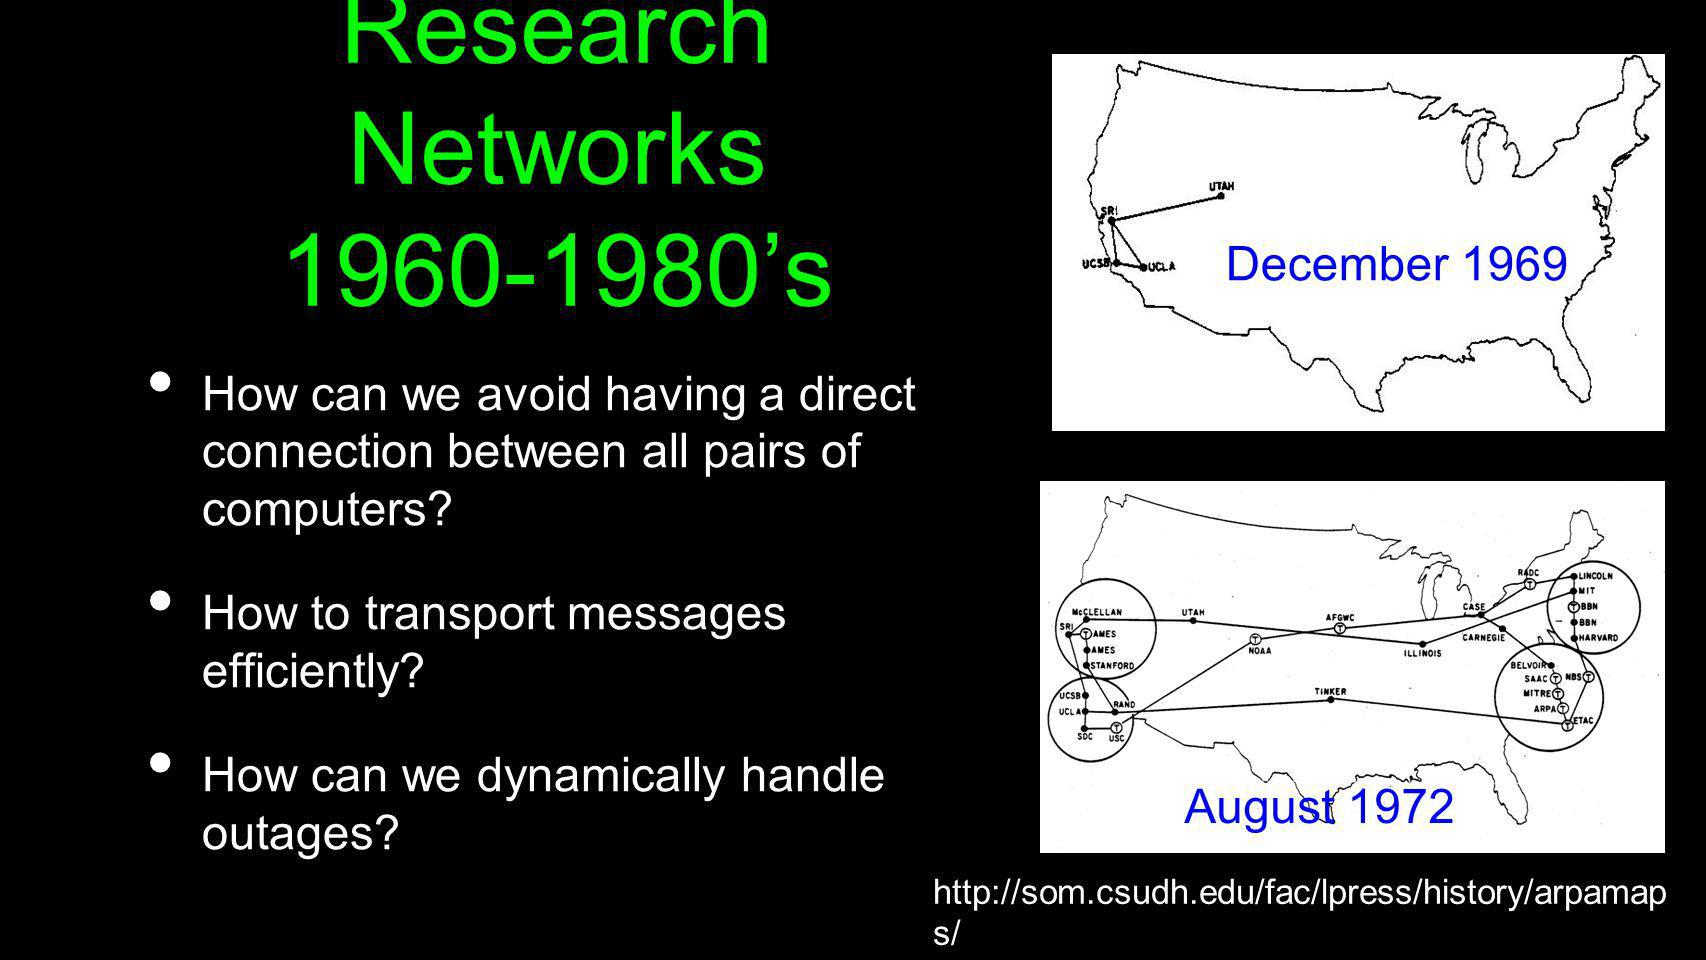 Research Networks 1960-1980's December 1969